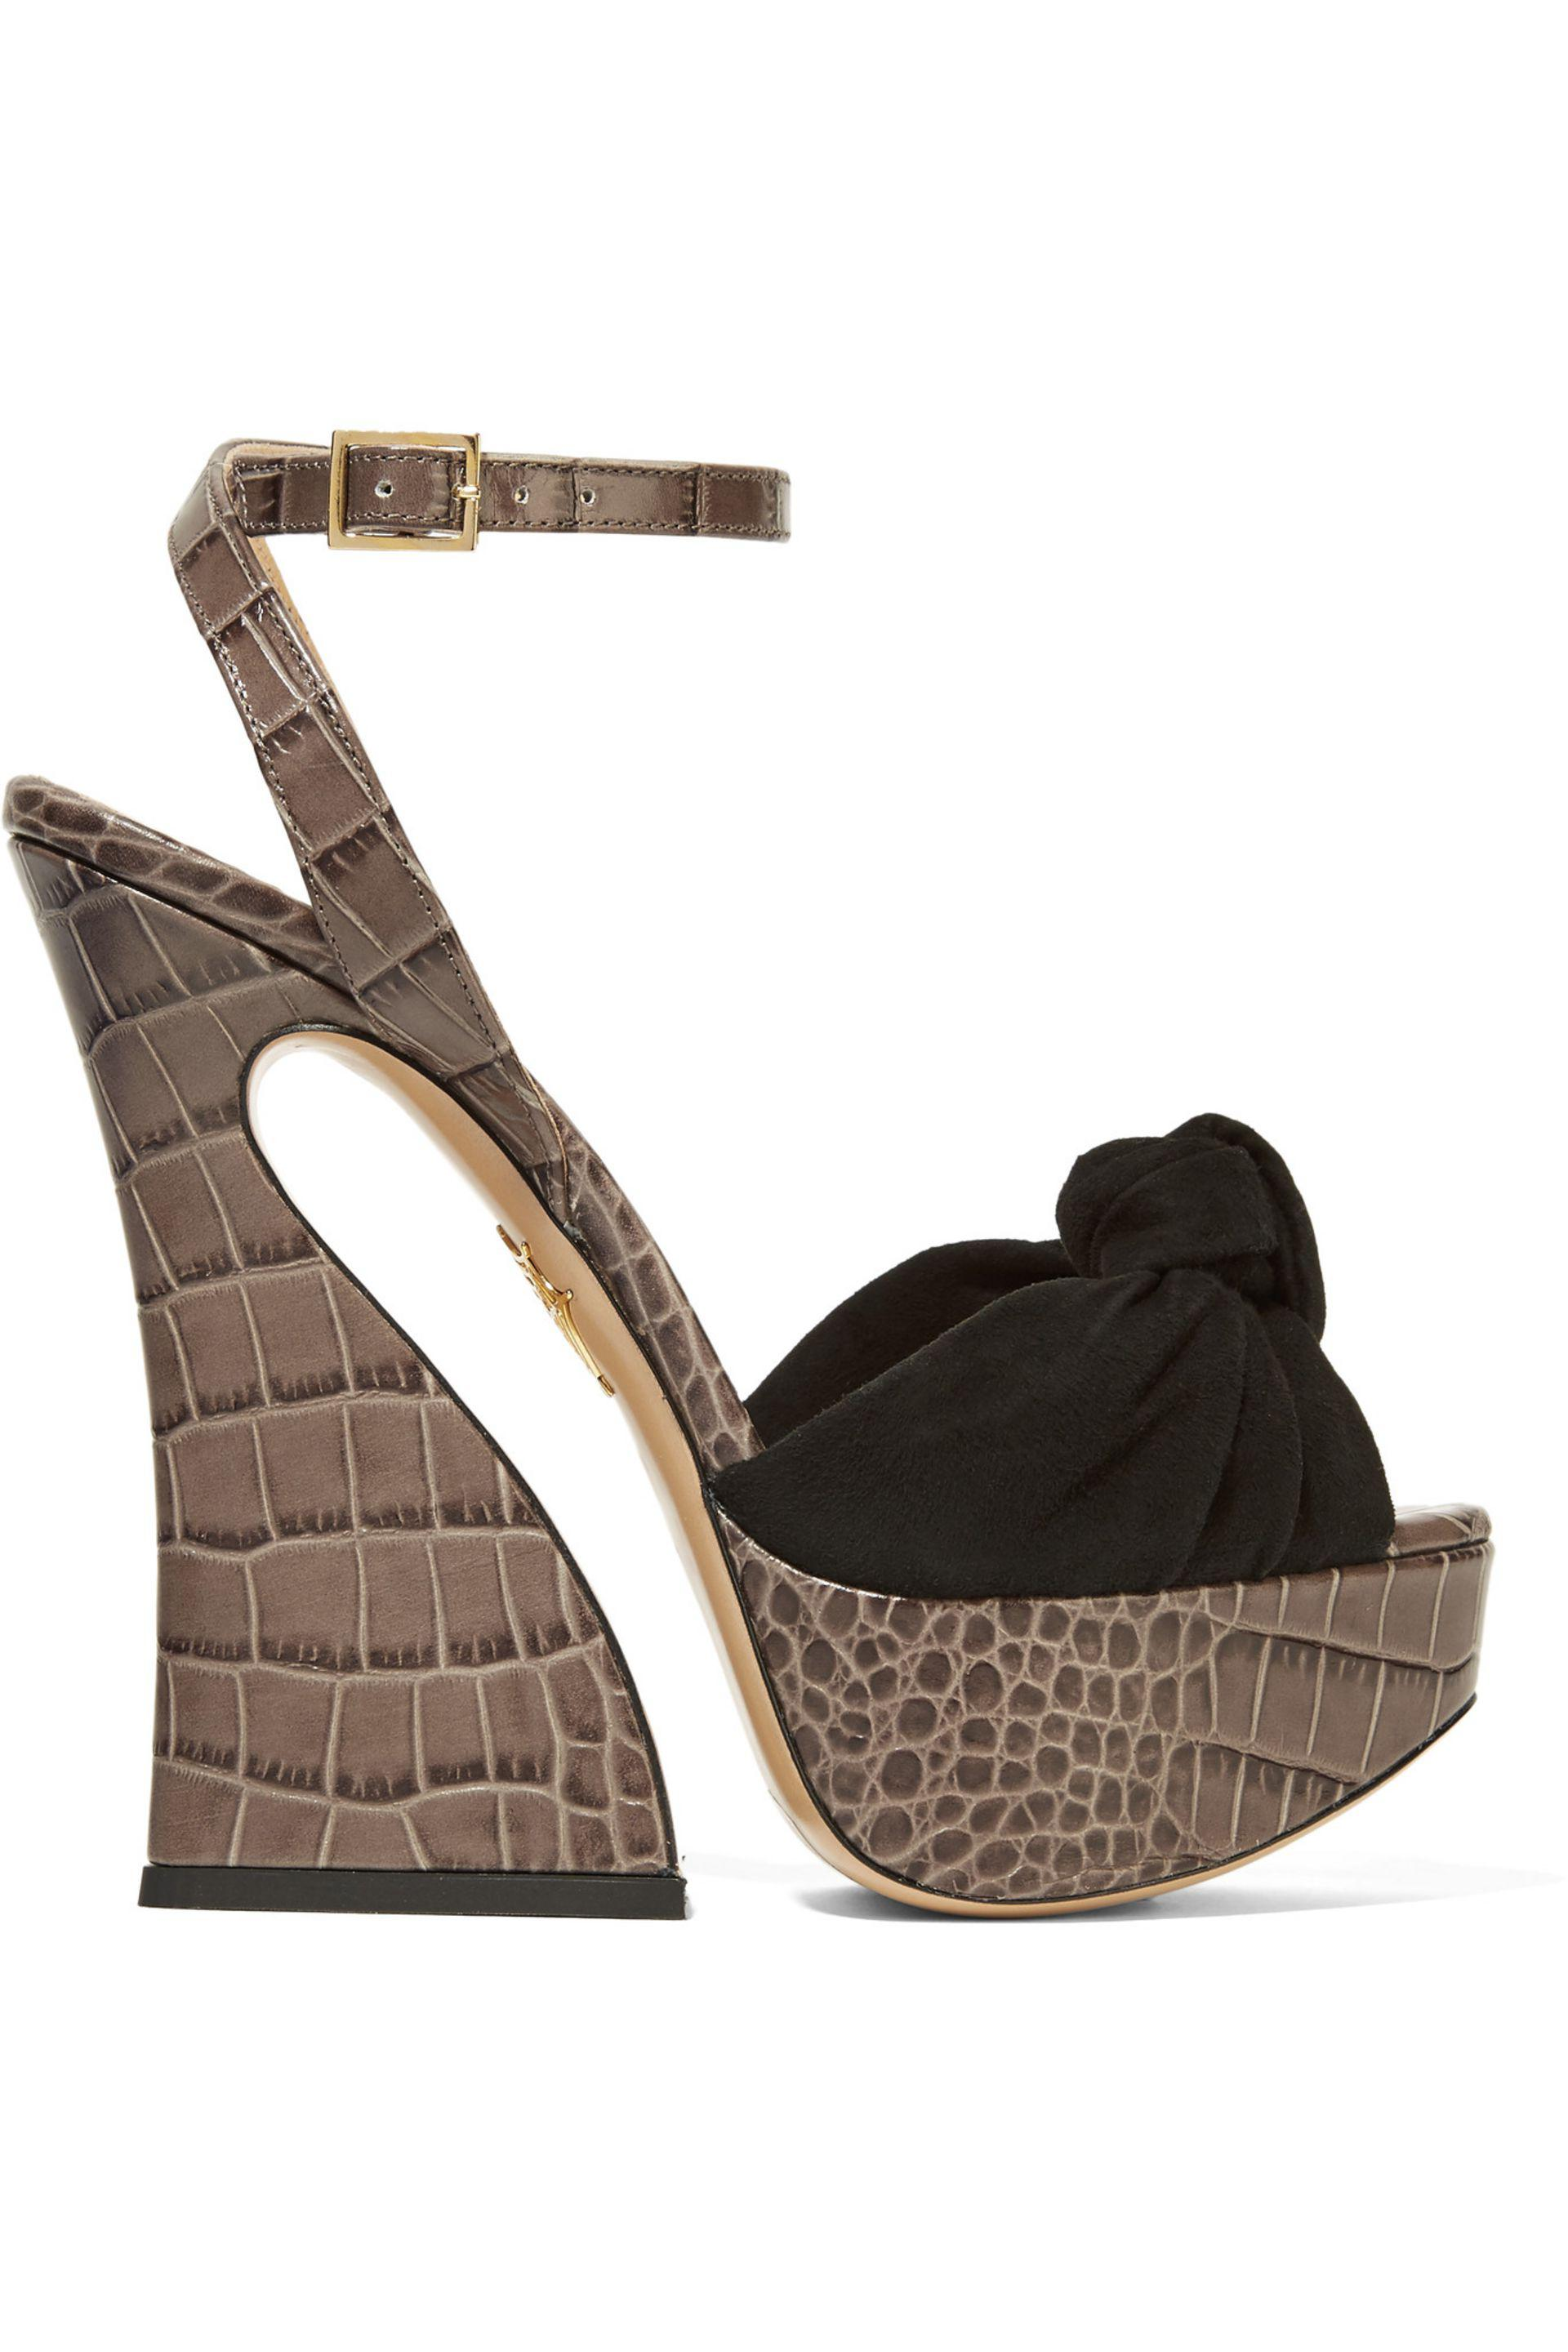 Charlotte Olympia Croc effect sandals xQUOFpN46